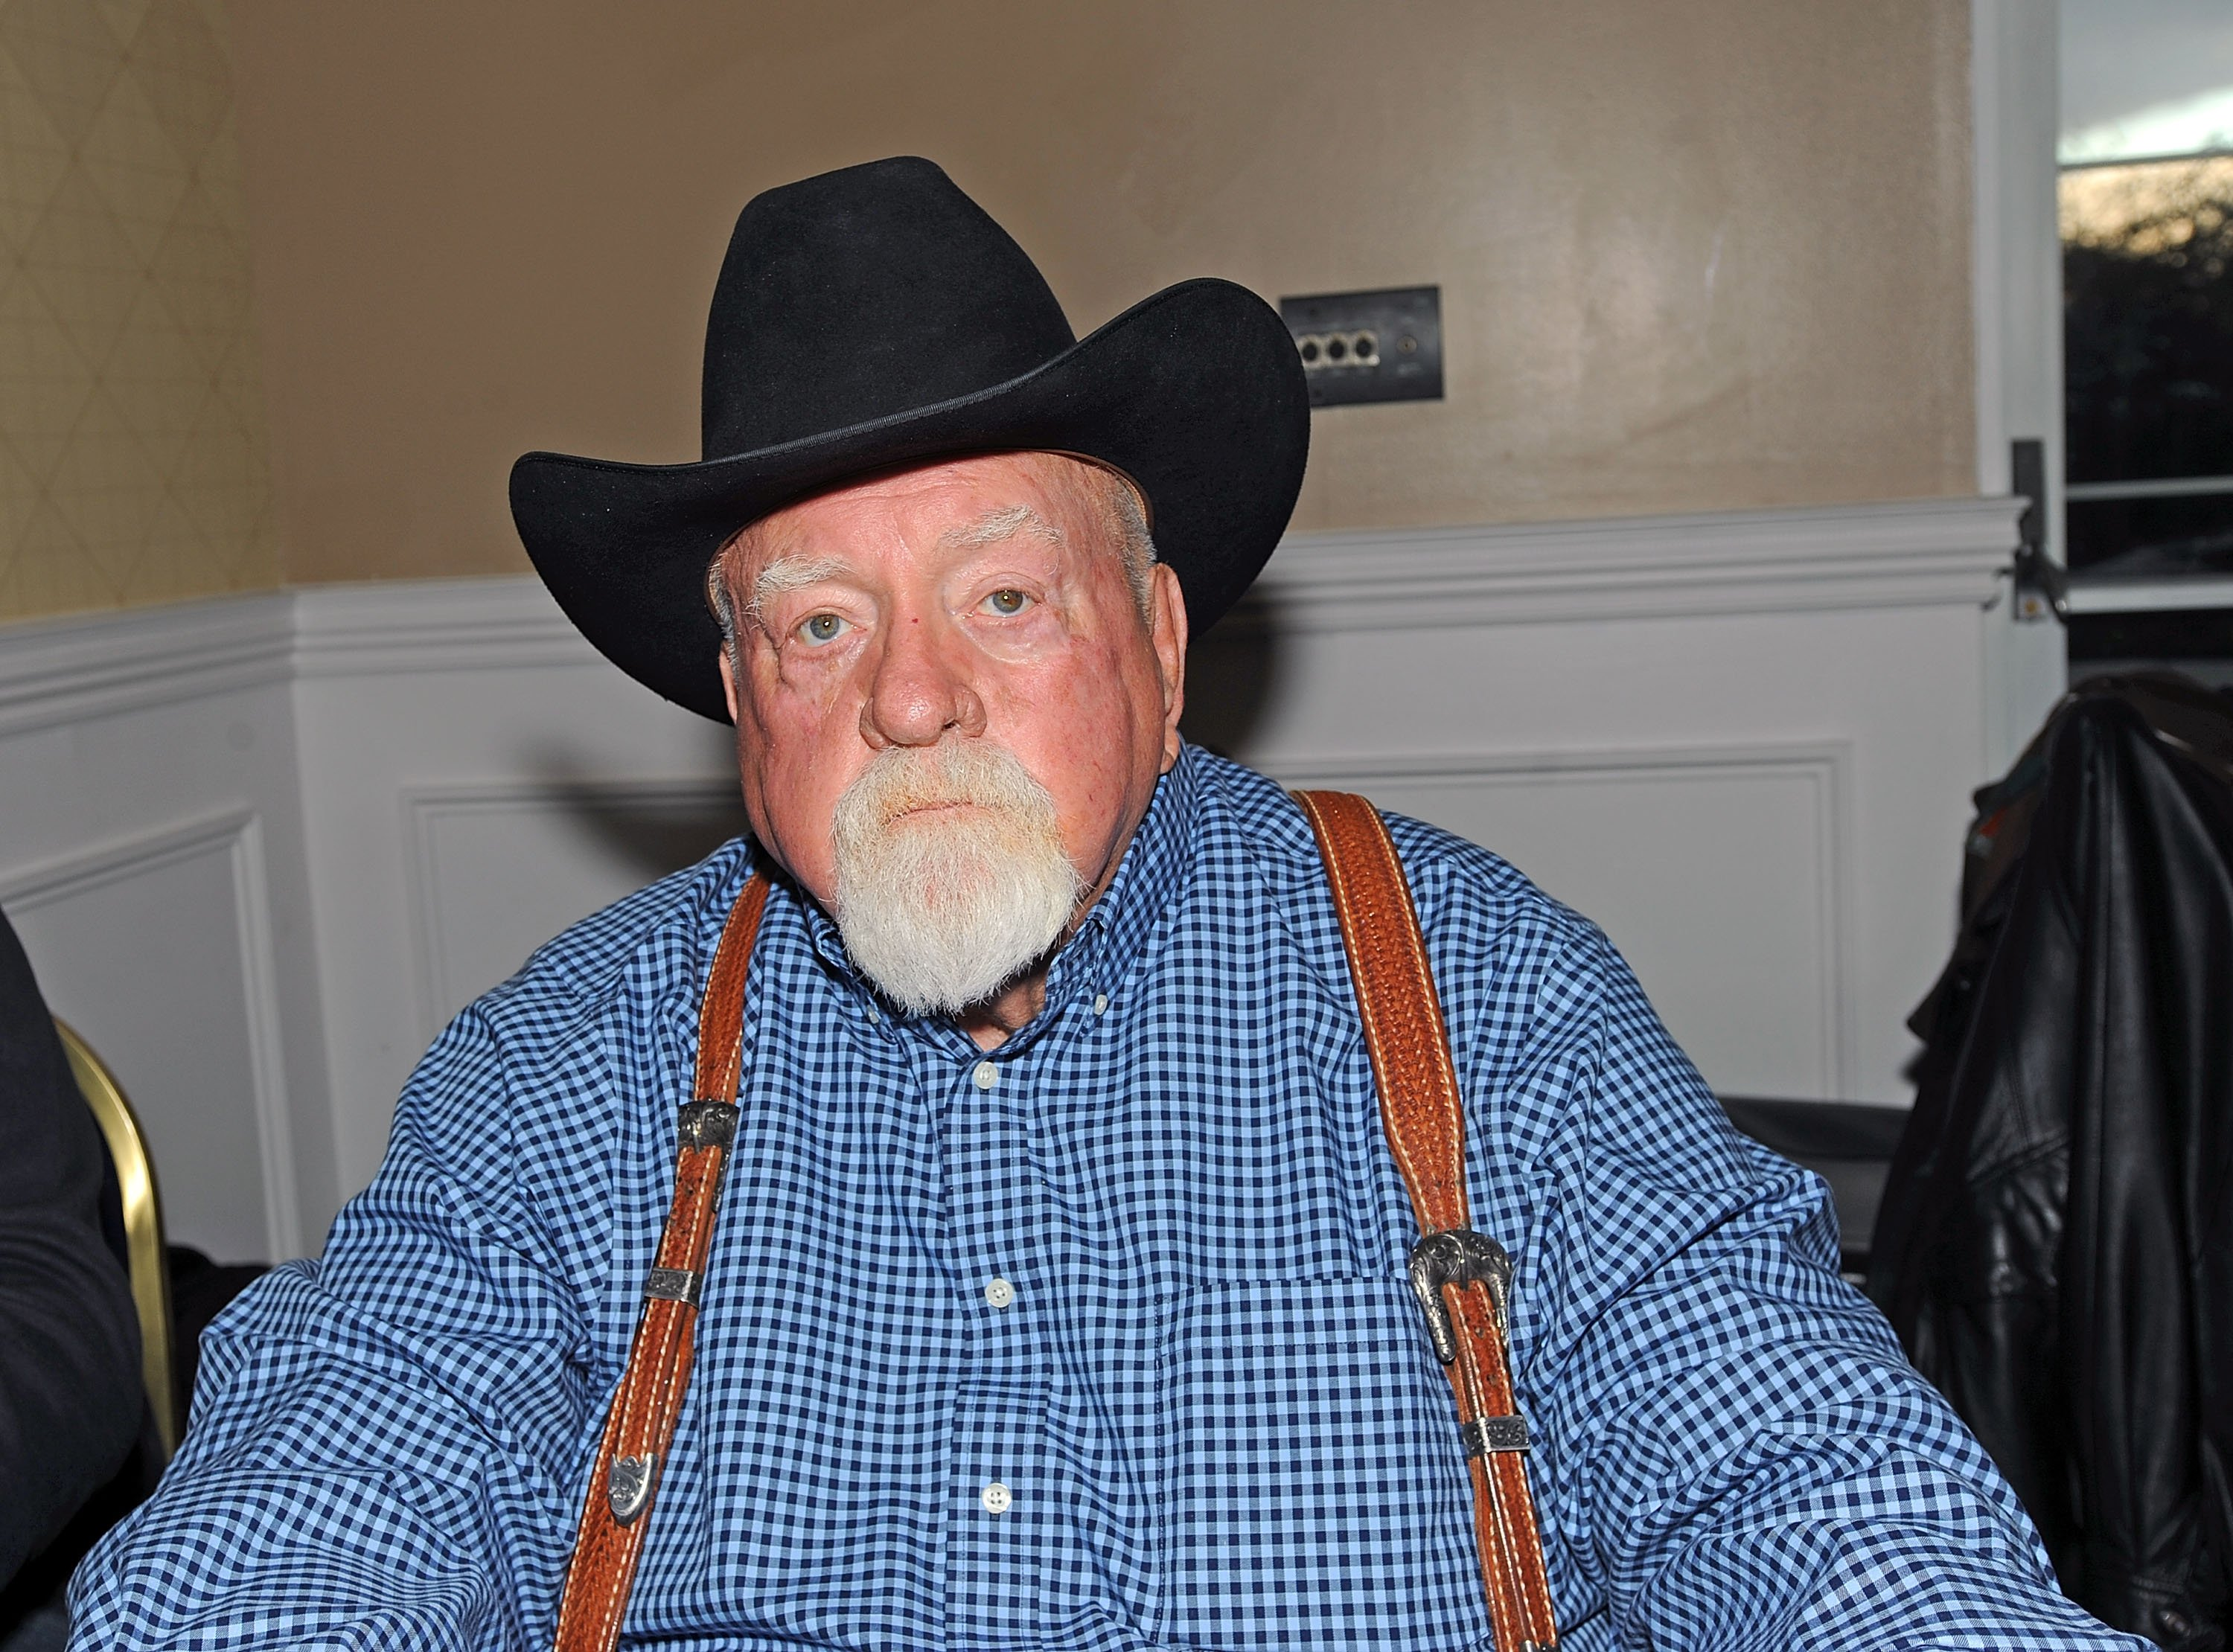 Image Source: Getty Images| A photo of Wilford Brimley